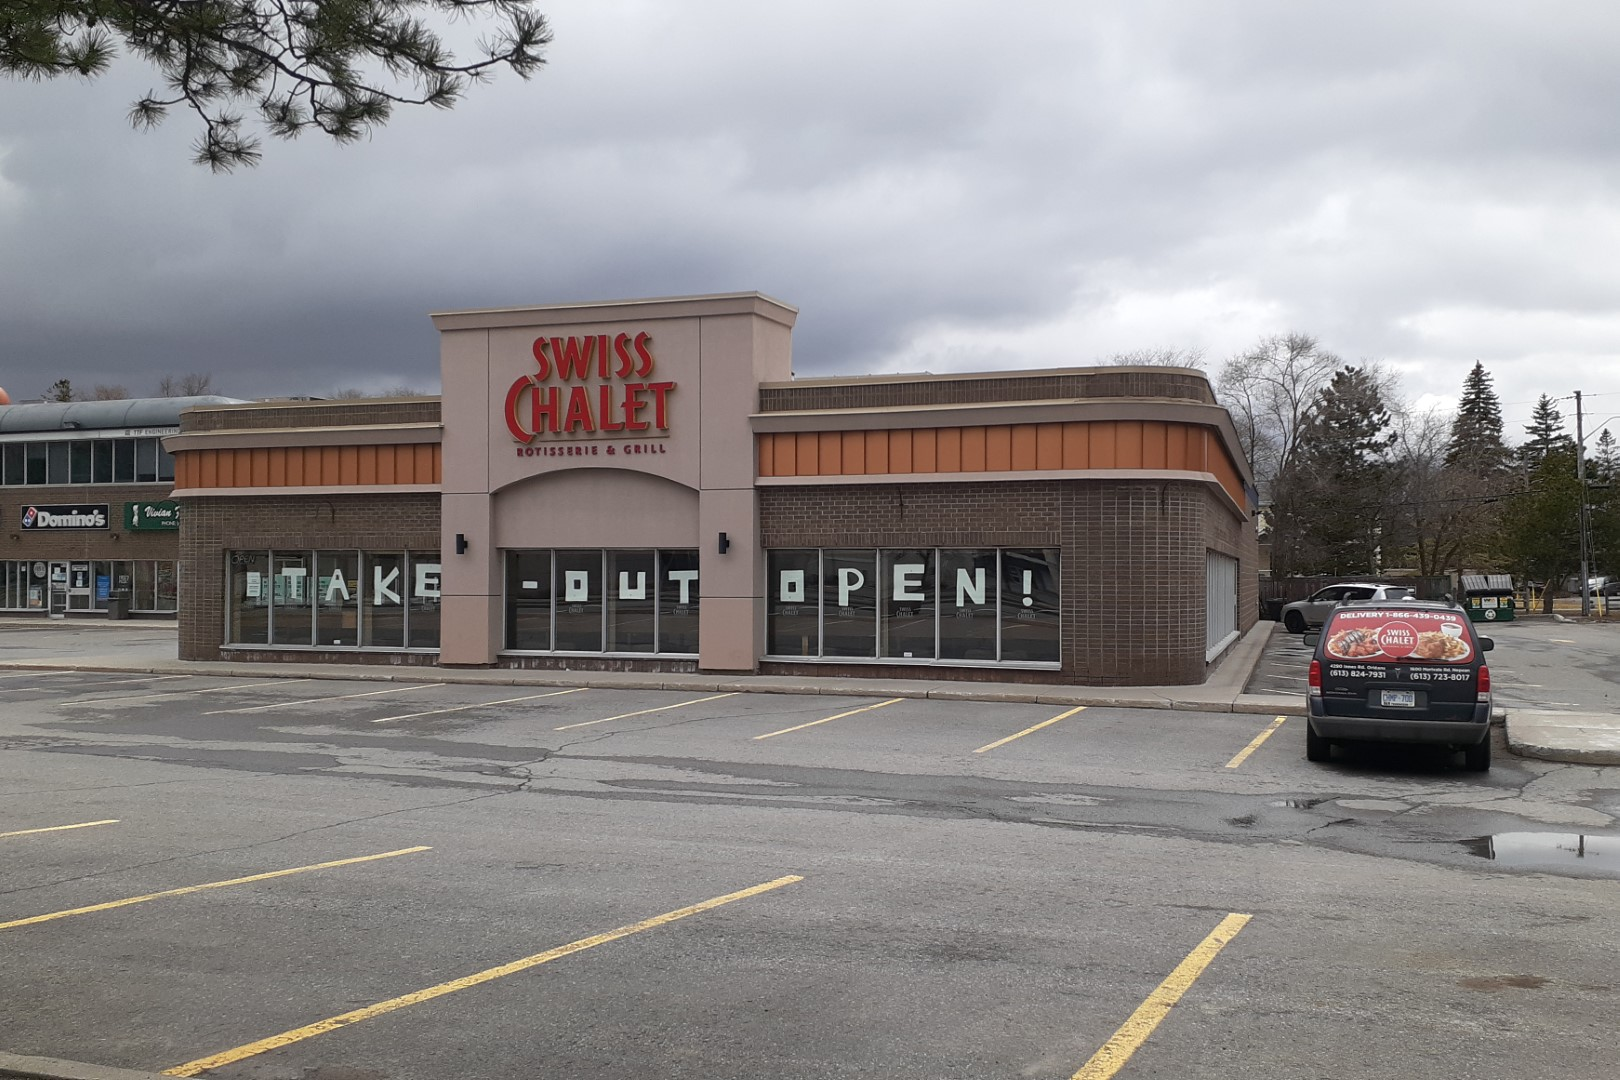 Open for delivery, Swiss Chalet, Merivale Road, Ottawa, April 2020